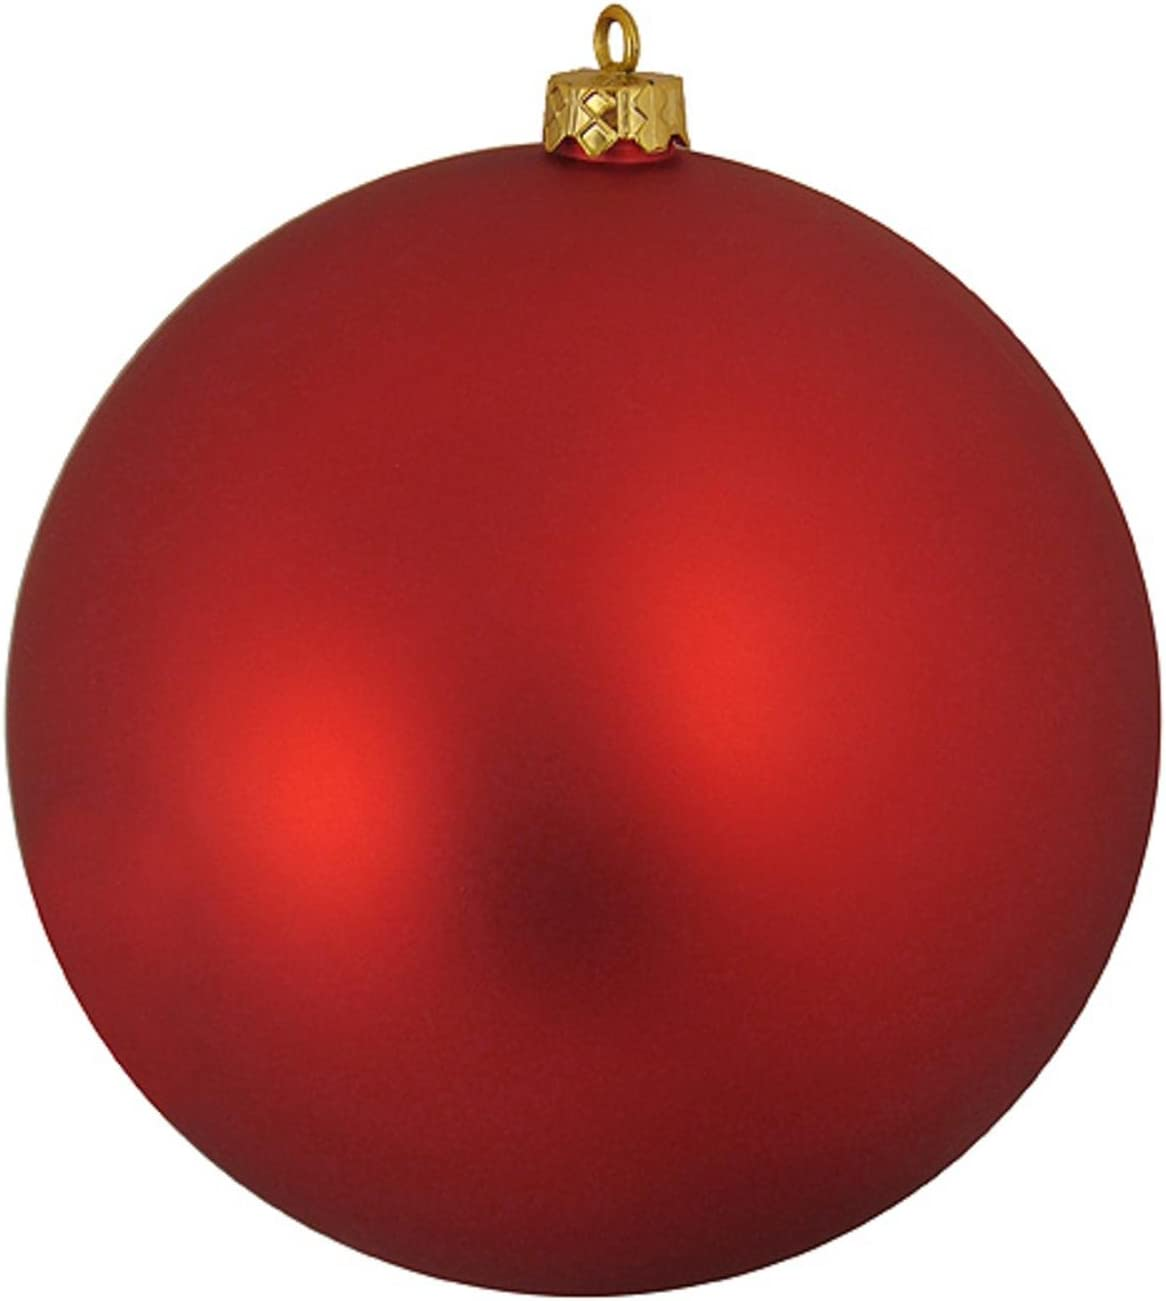 Amazon Com Northlight Shatterproof Matte Red Hot Commercial Christmas Ball Ornament 10 Home Kitchen